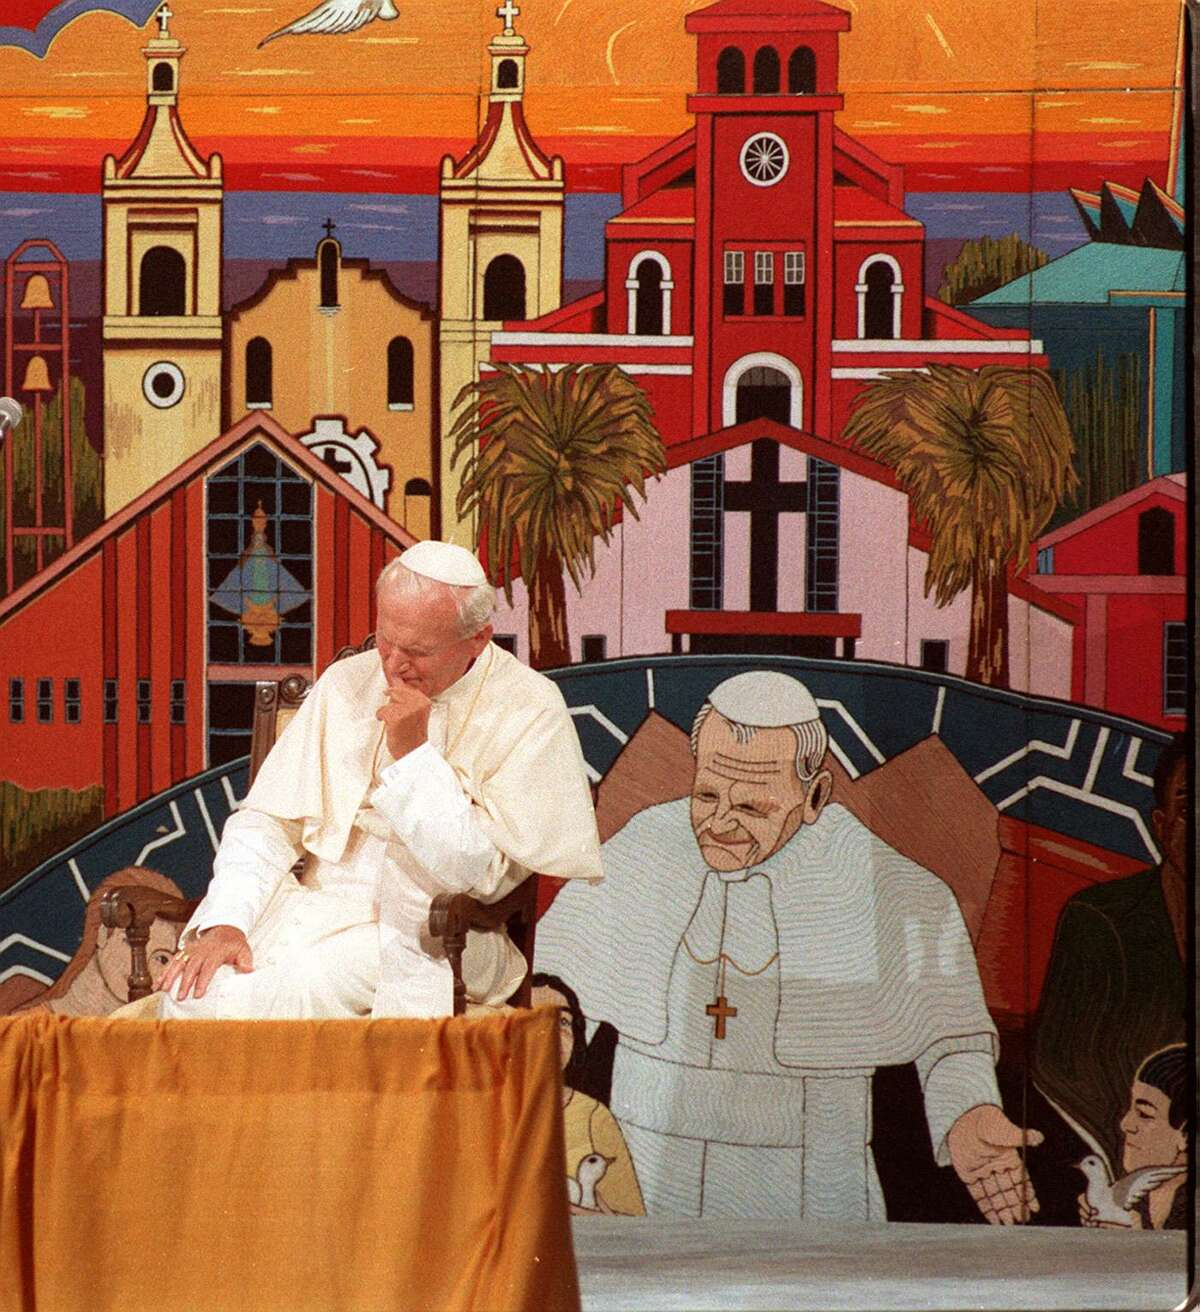 Pope John Paul II prays in front of a crowd at Guadalupe Plaza on Sept 13, 1987, during his visit to San Antonio.